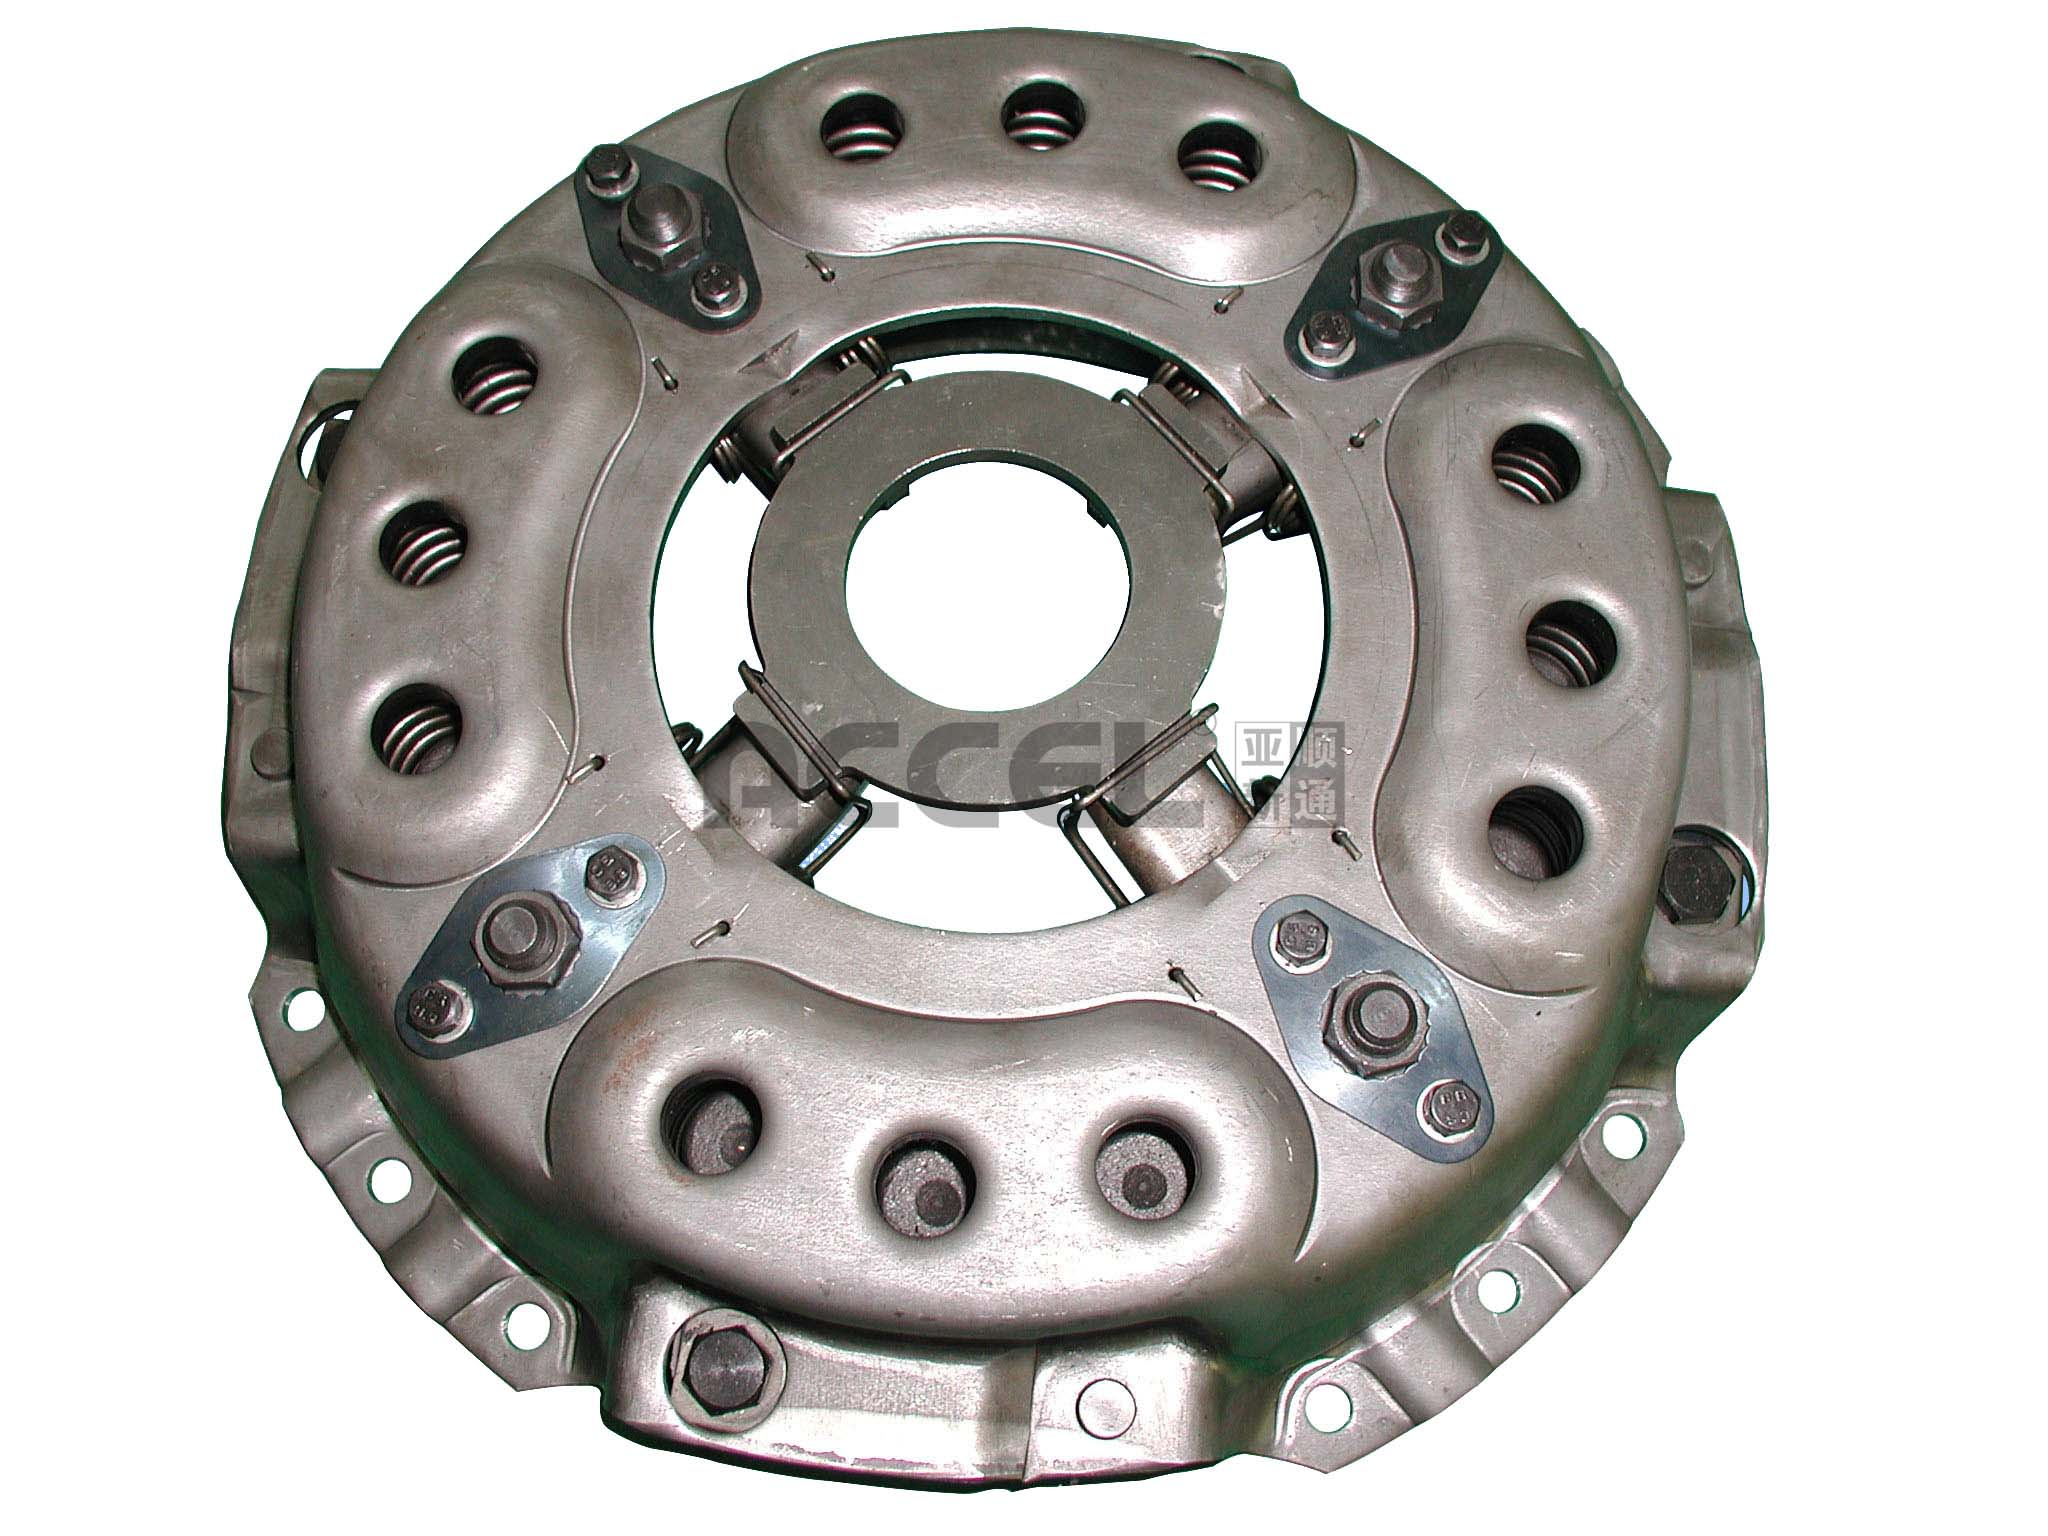 Clutch Cover/OE:NDC524/325*210*368/CHN-004/HINO/LY151/SCHD-012/41200-55000/ISC602/ME521106/1-31220-393-0/30210-Z5065/31210-1180/MFC507